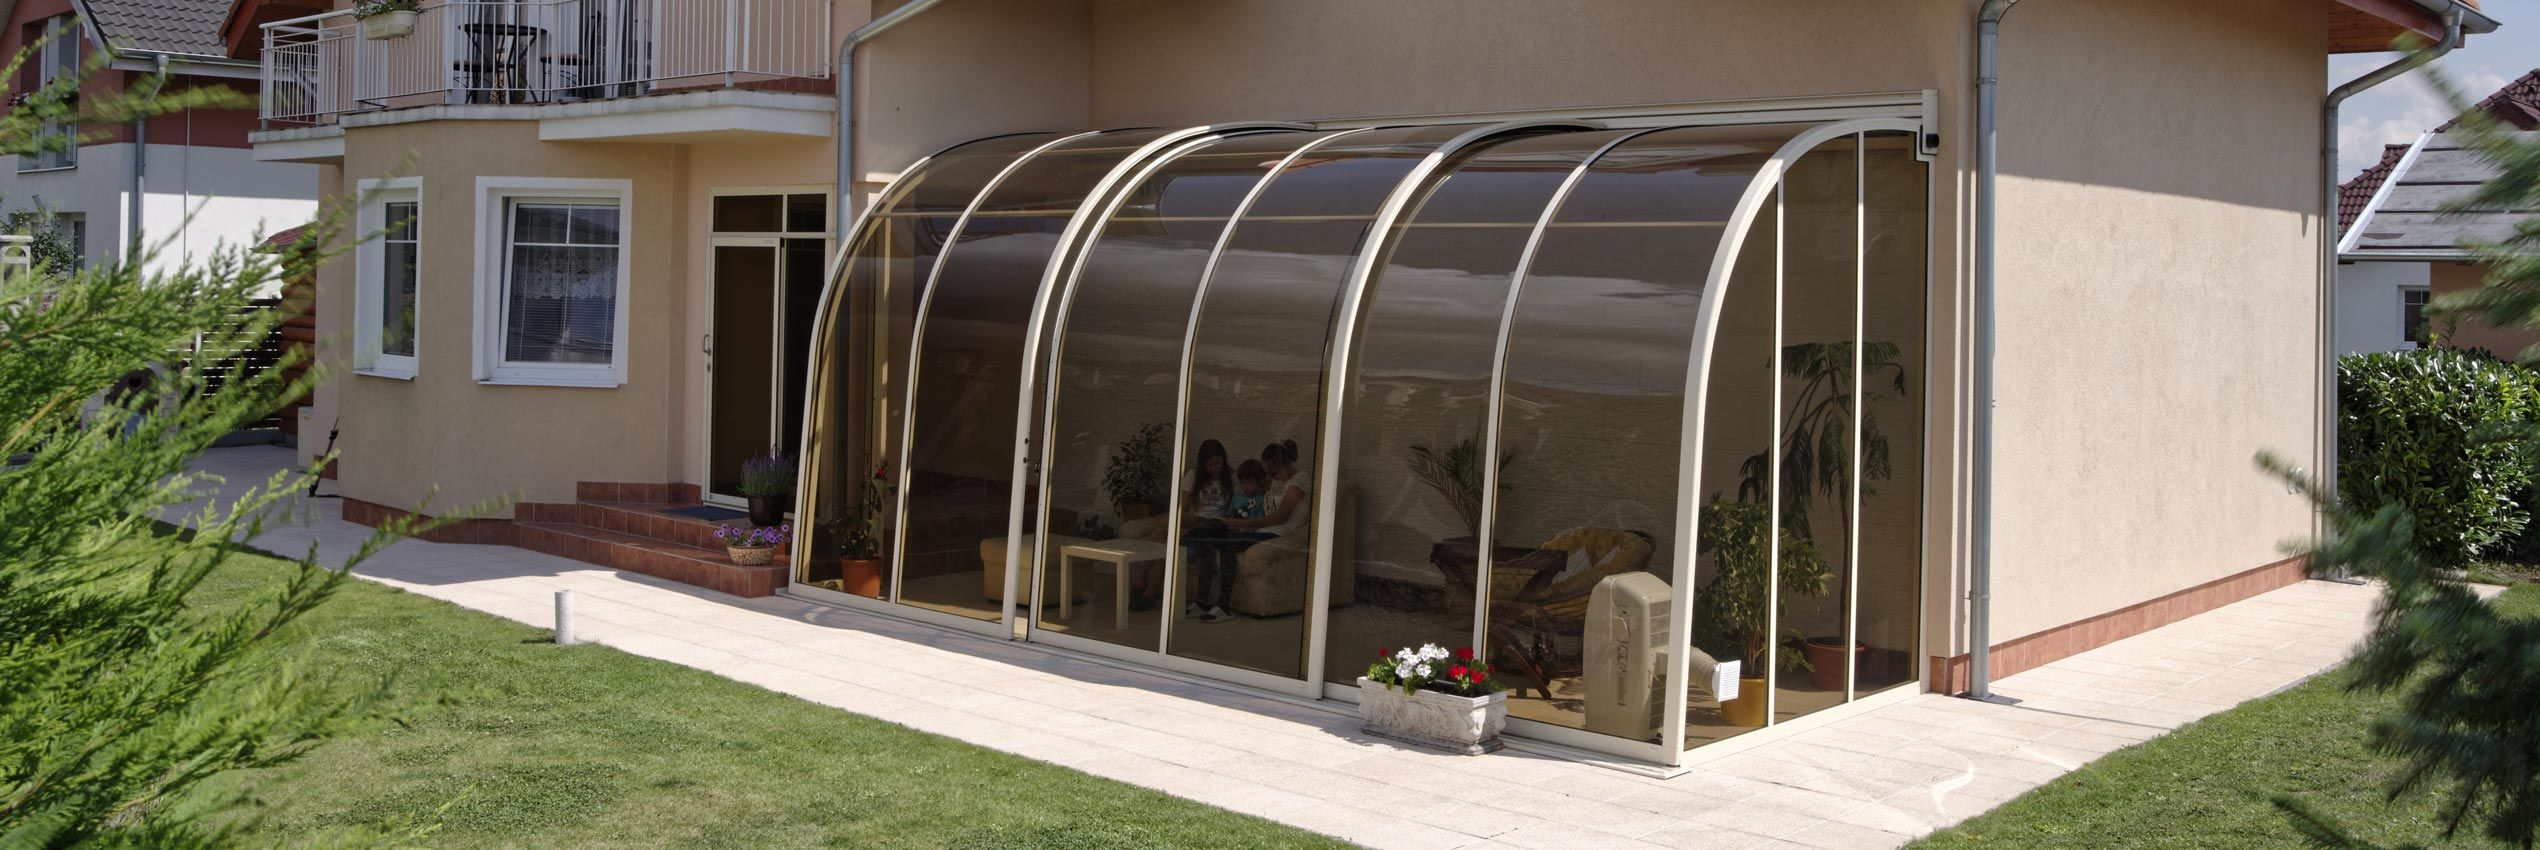 retractable patio enclosure corso entry sunrooms. Black Bedroom Furniture Sets. Home Design Ideas